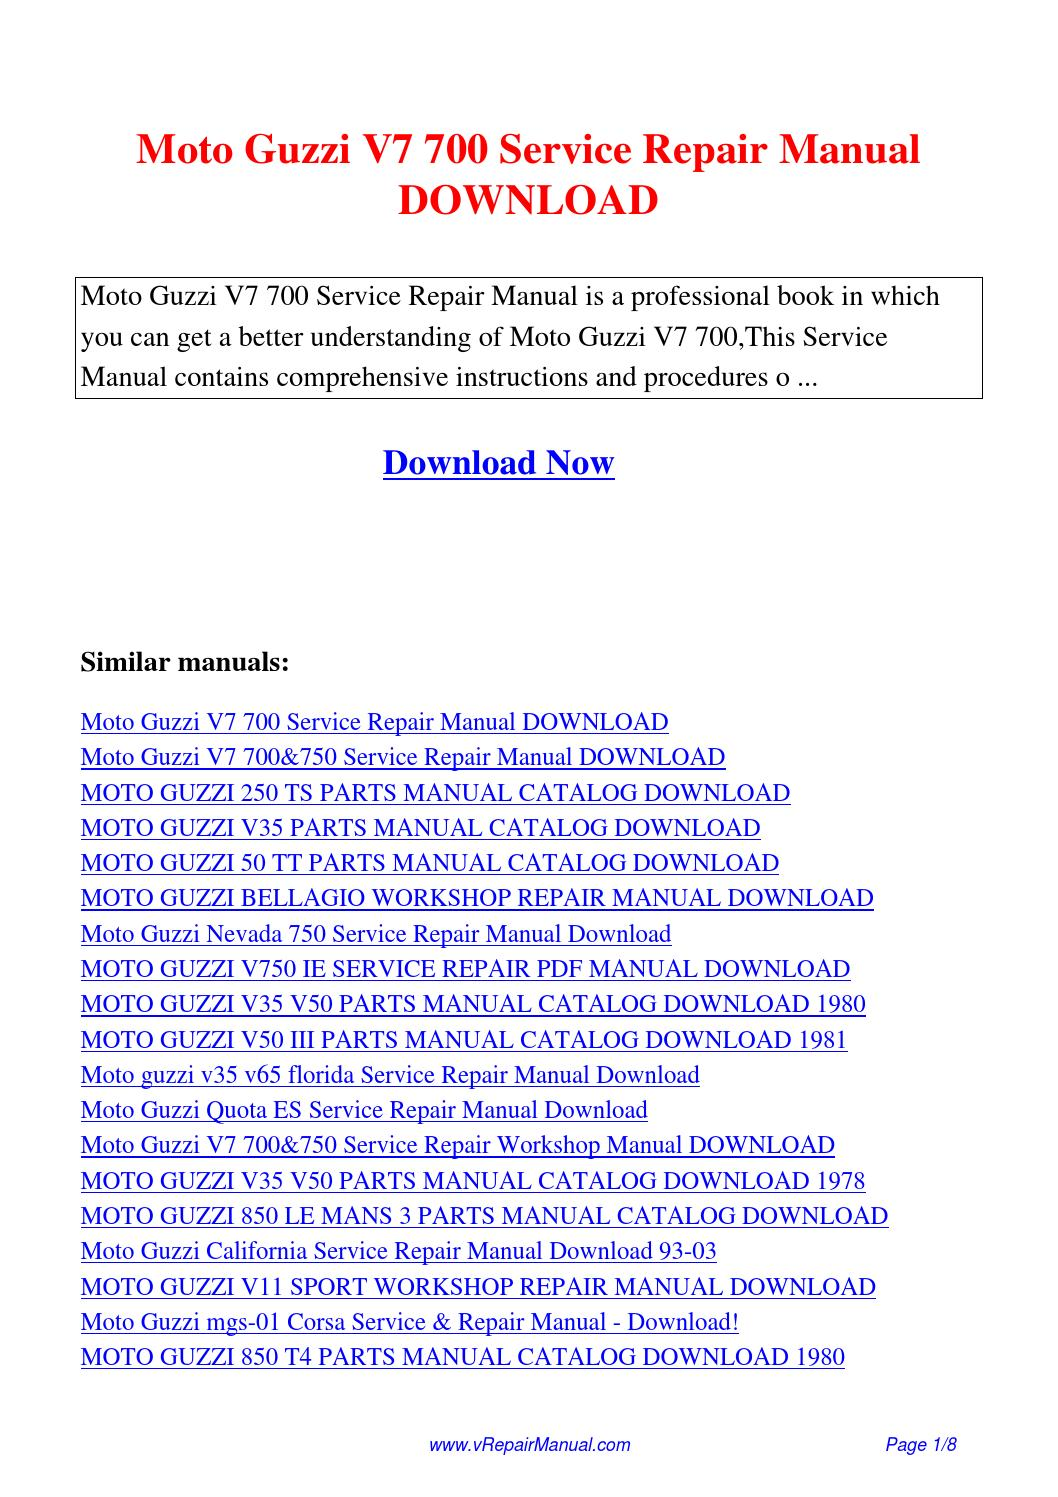 Moto Guzzi V7 700 Service Repair Manual Pdf By David Zhang